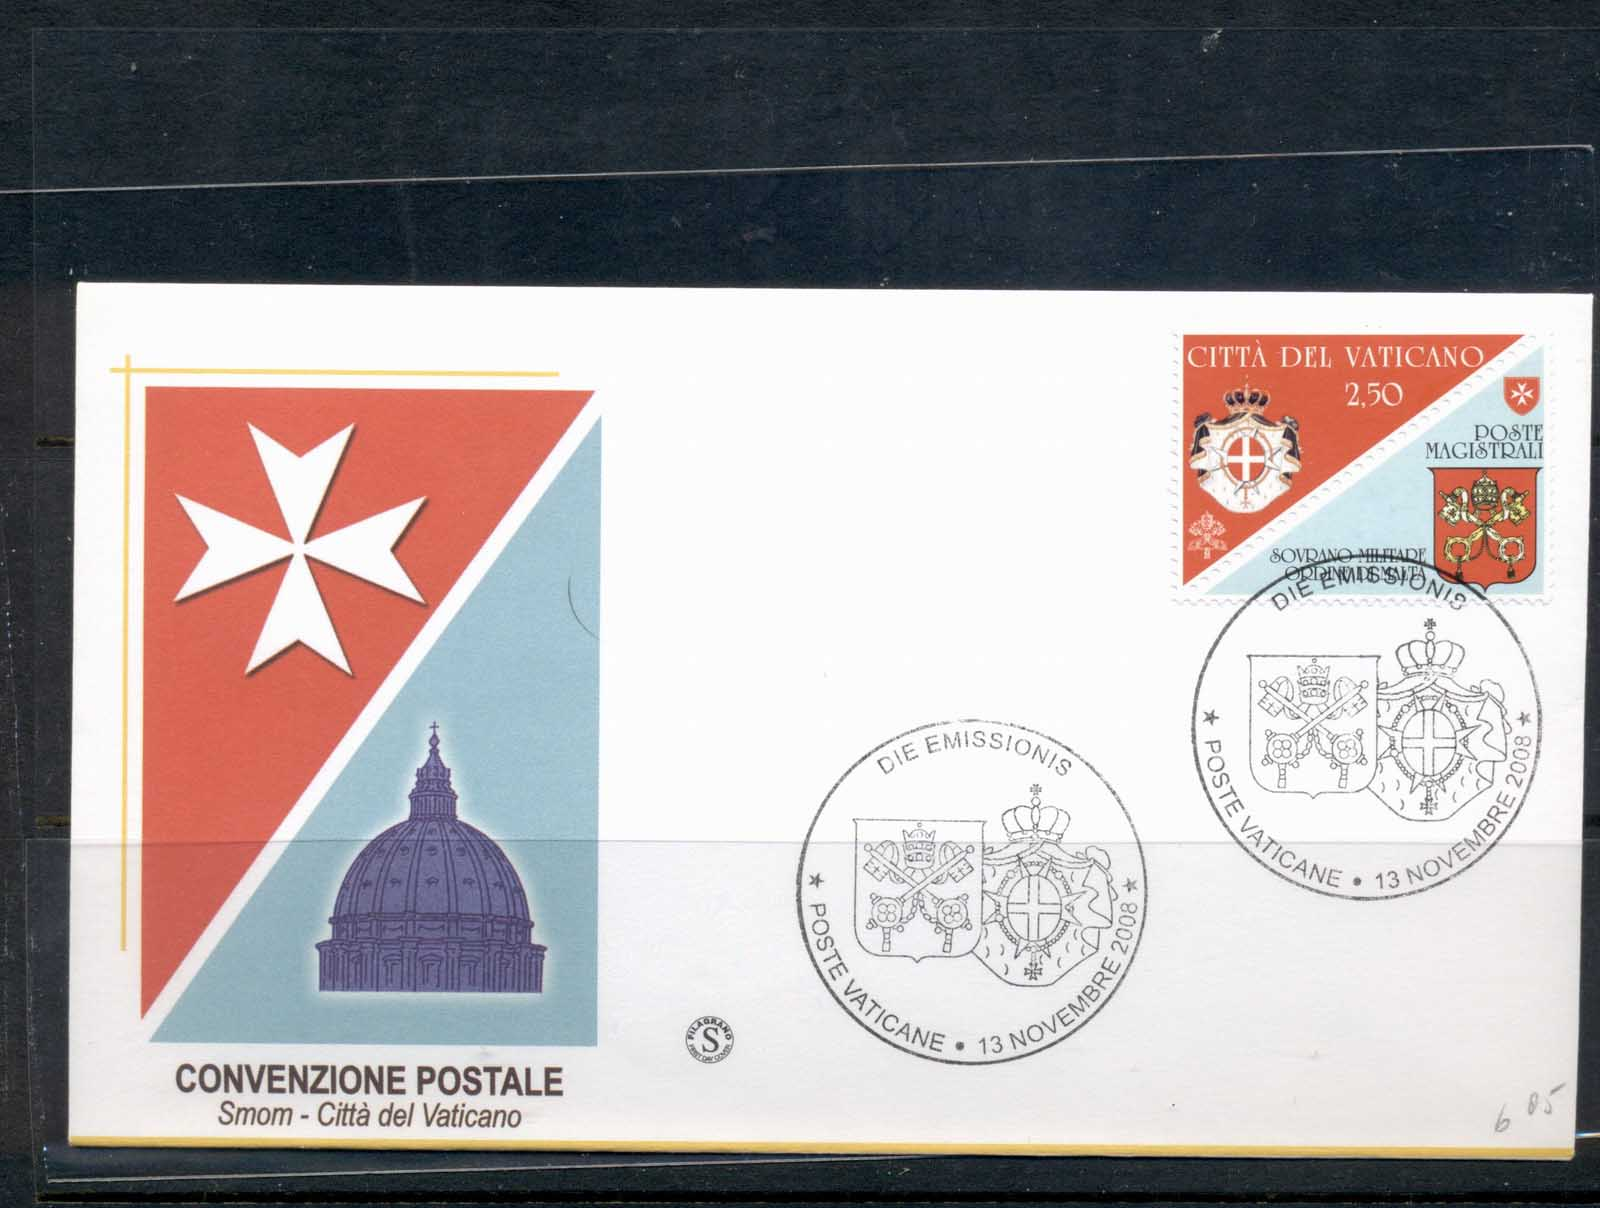 Vatican 2008 Postal Convention FDC